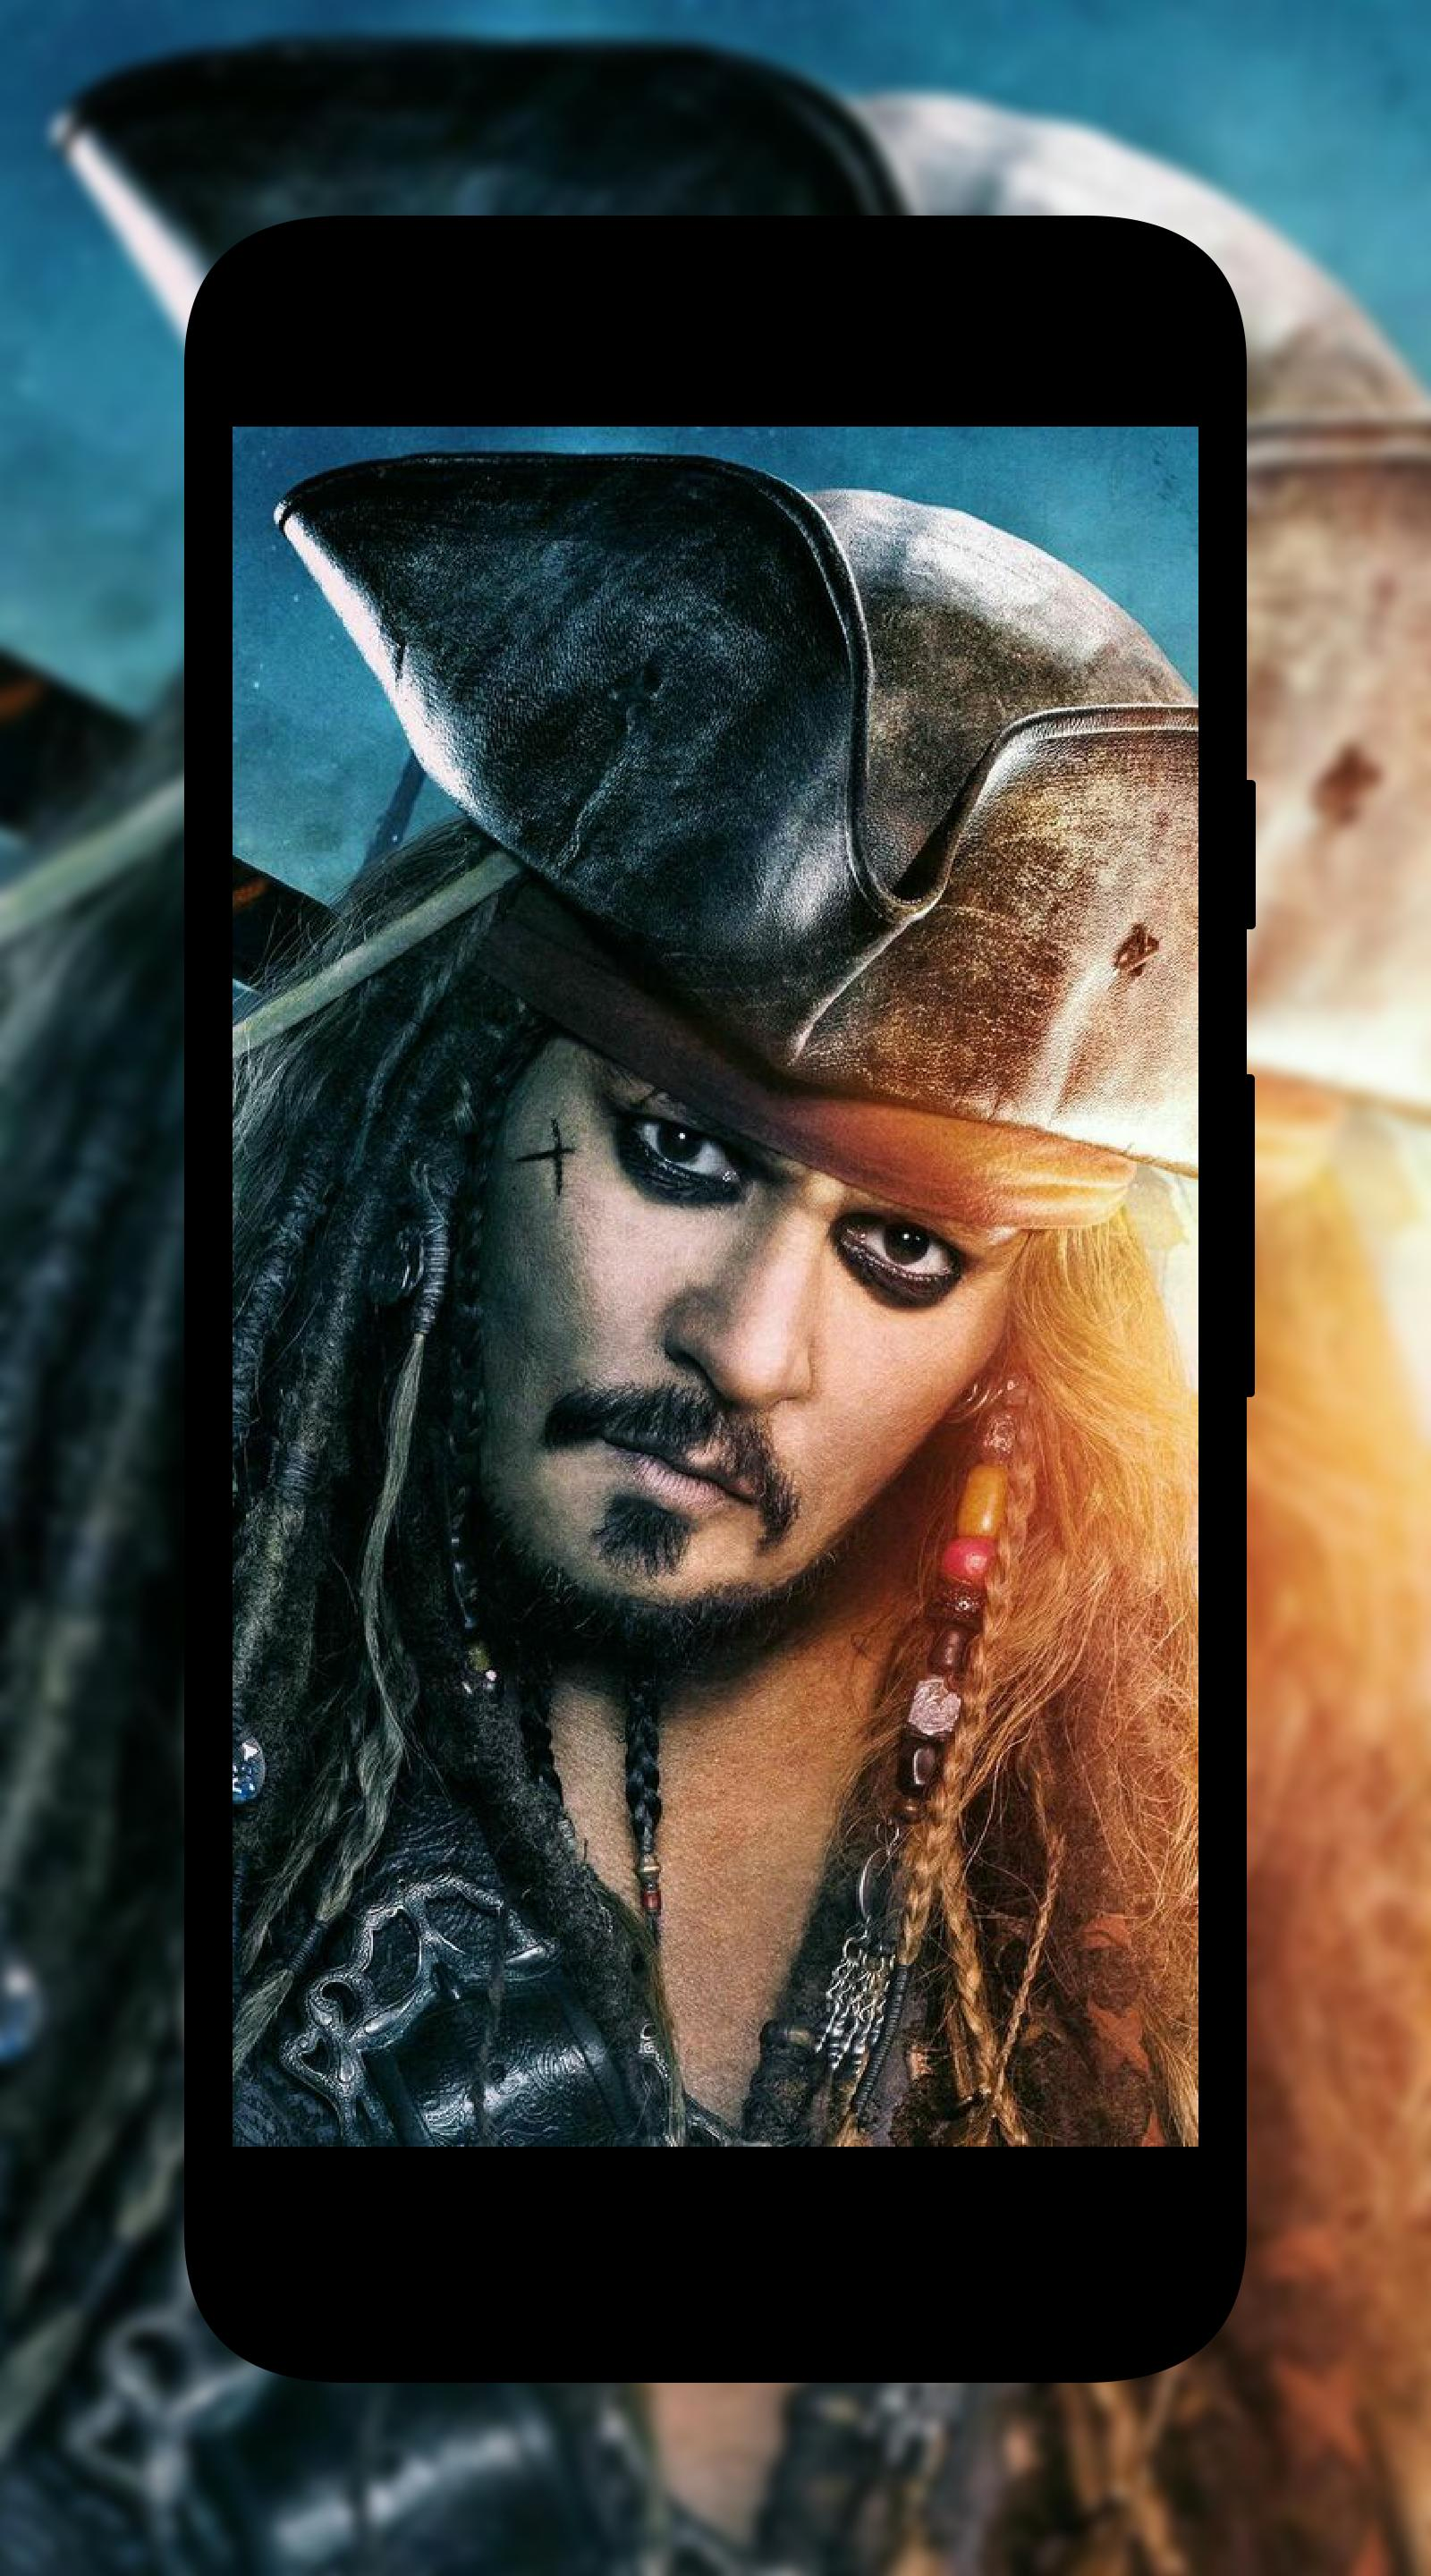 Jack Sparrow Wallpaper For Android Apk Download